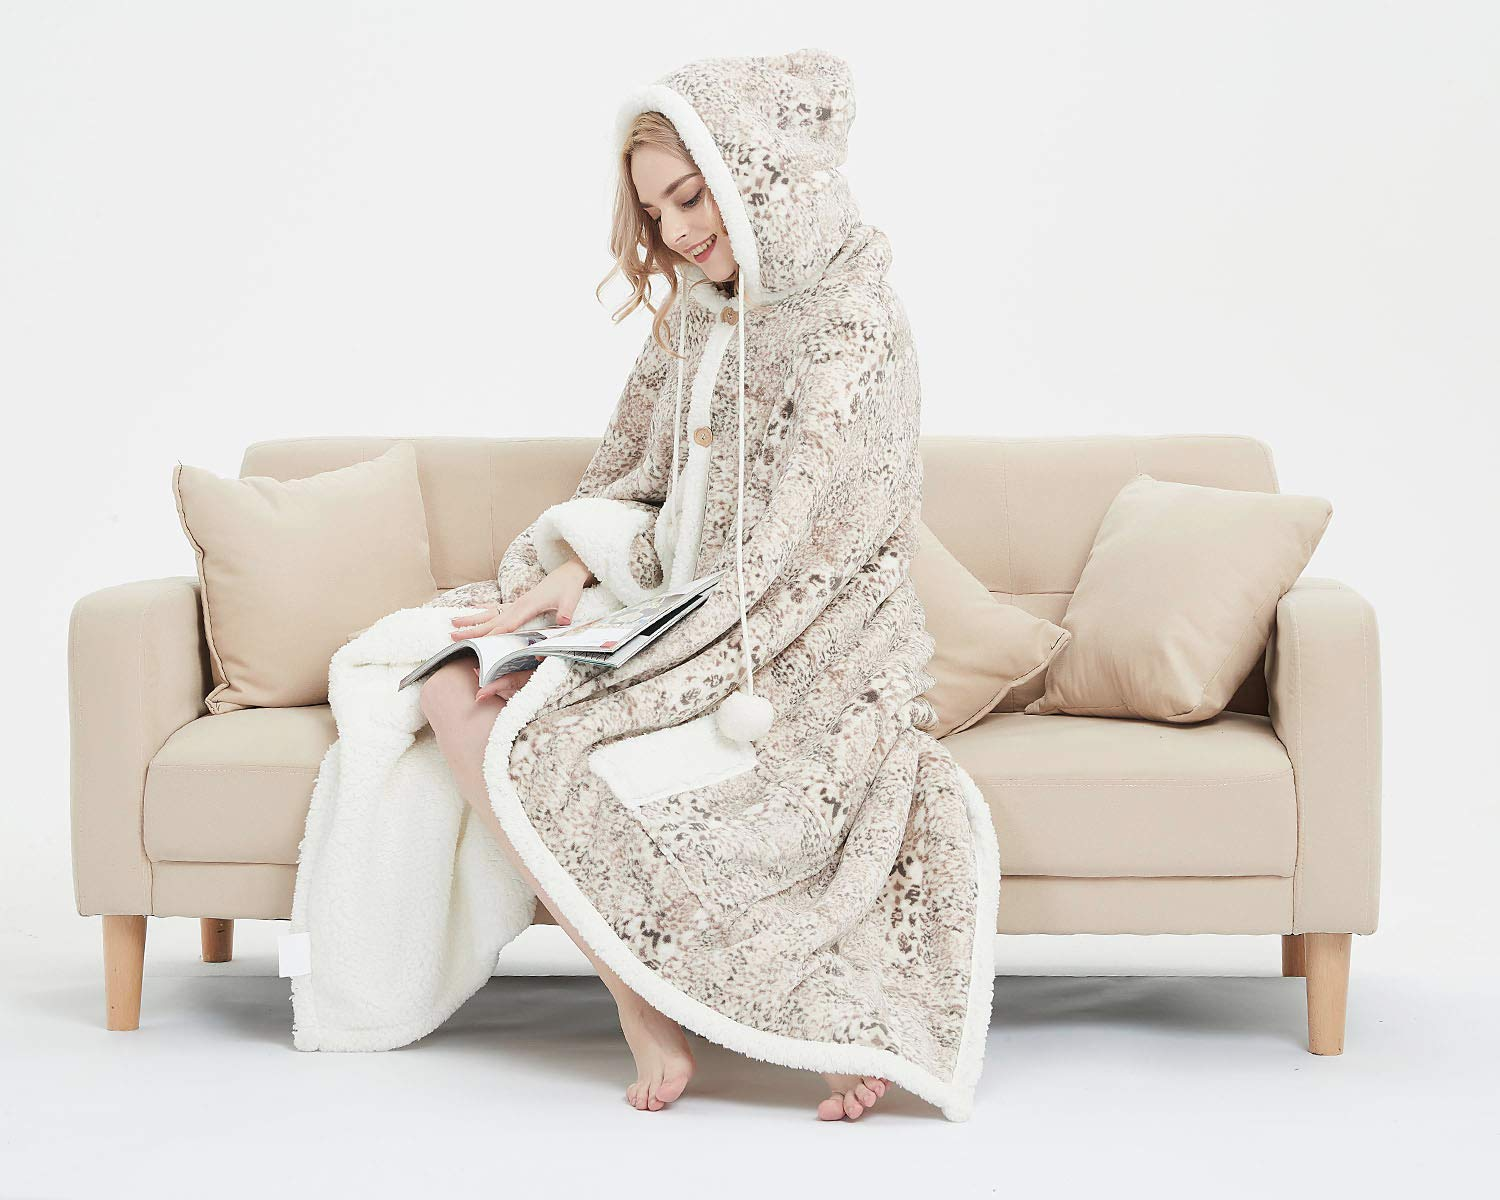 MARQUESS Hooded Throw Robe Wrap Ultra Soft Plush Coral Fleece & Sherpa Wearable Blanket with 2 Pockets Animal Print Chic Lifestyle 51 x 71'' (Cream Point) by MARQUESS